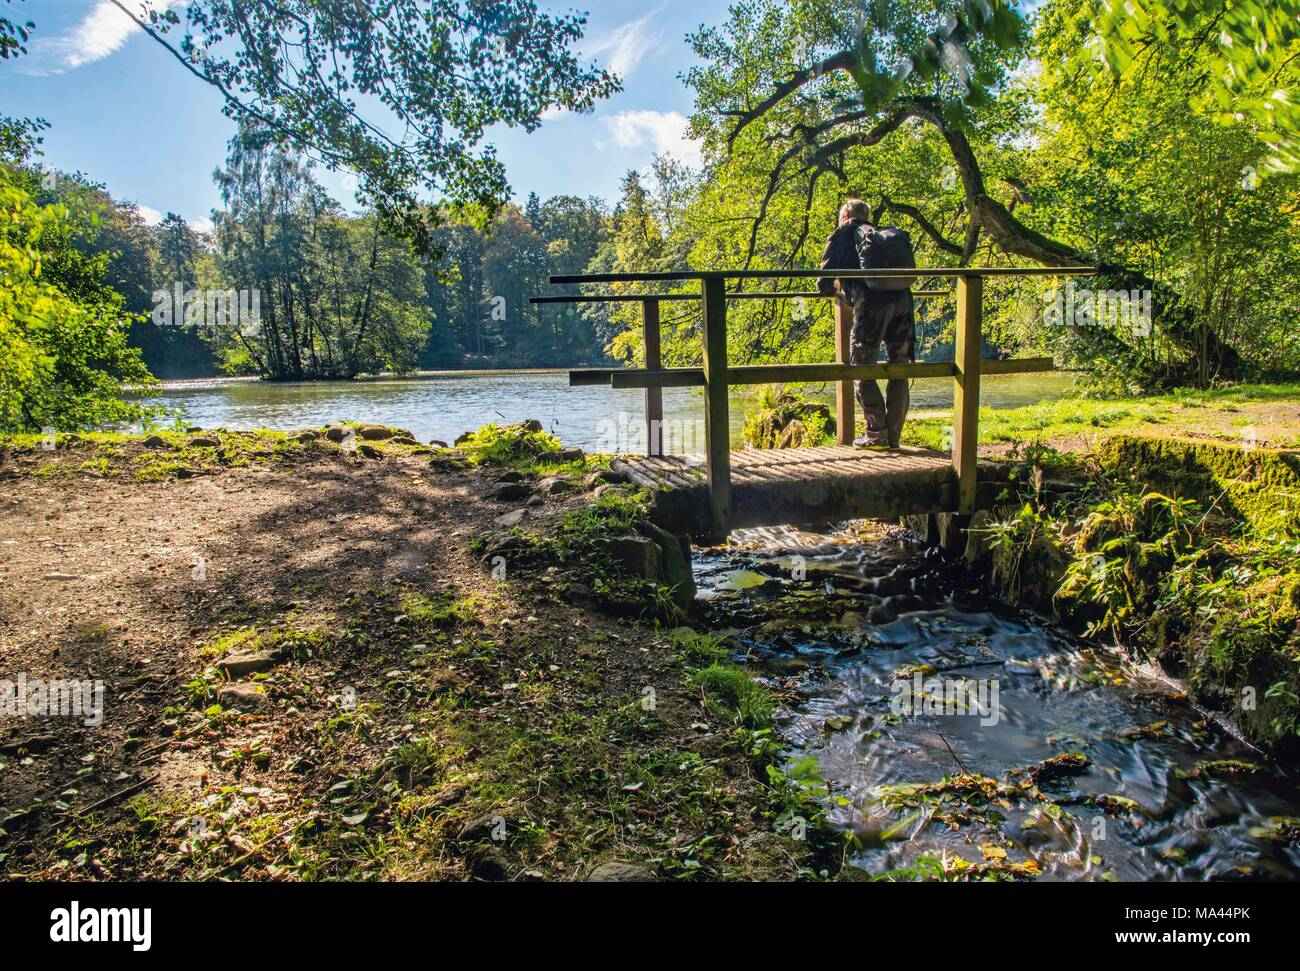 The panoramic 'Kassel-Steig' hiking trail at Lake Asch, Kassel, Germany - Stock Image